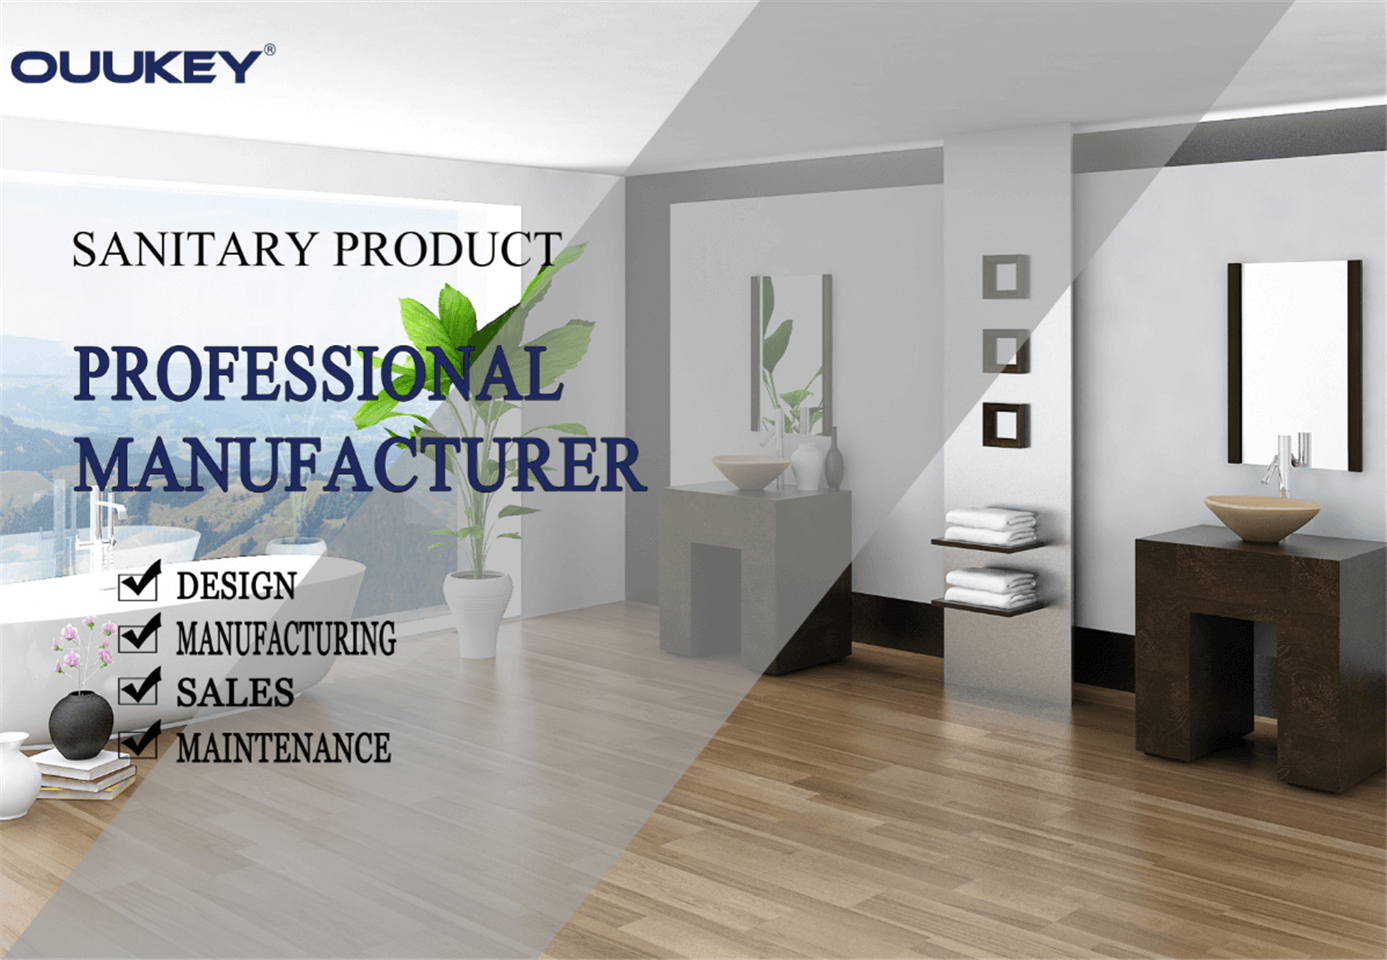 ouukey faucet supplier